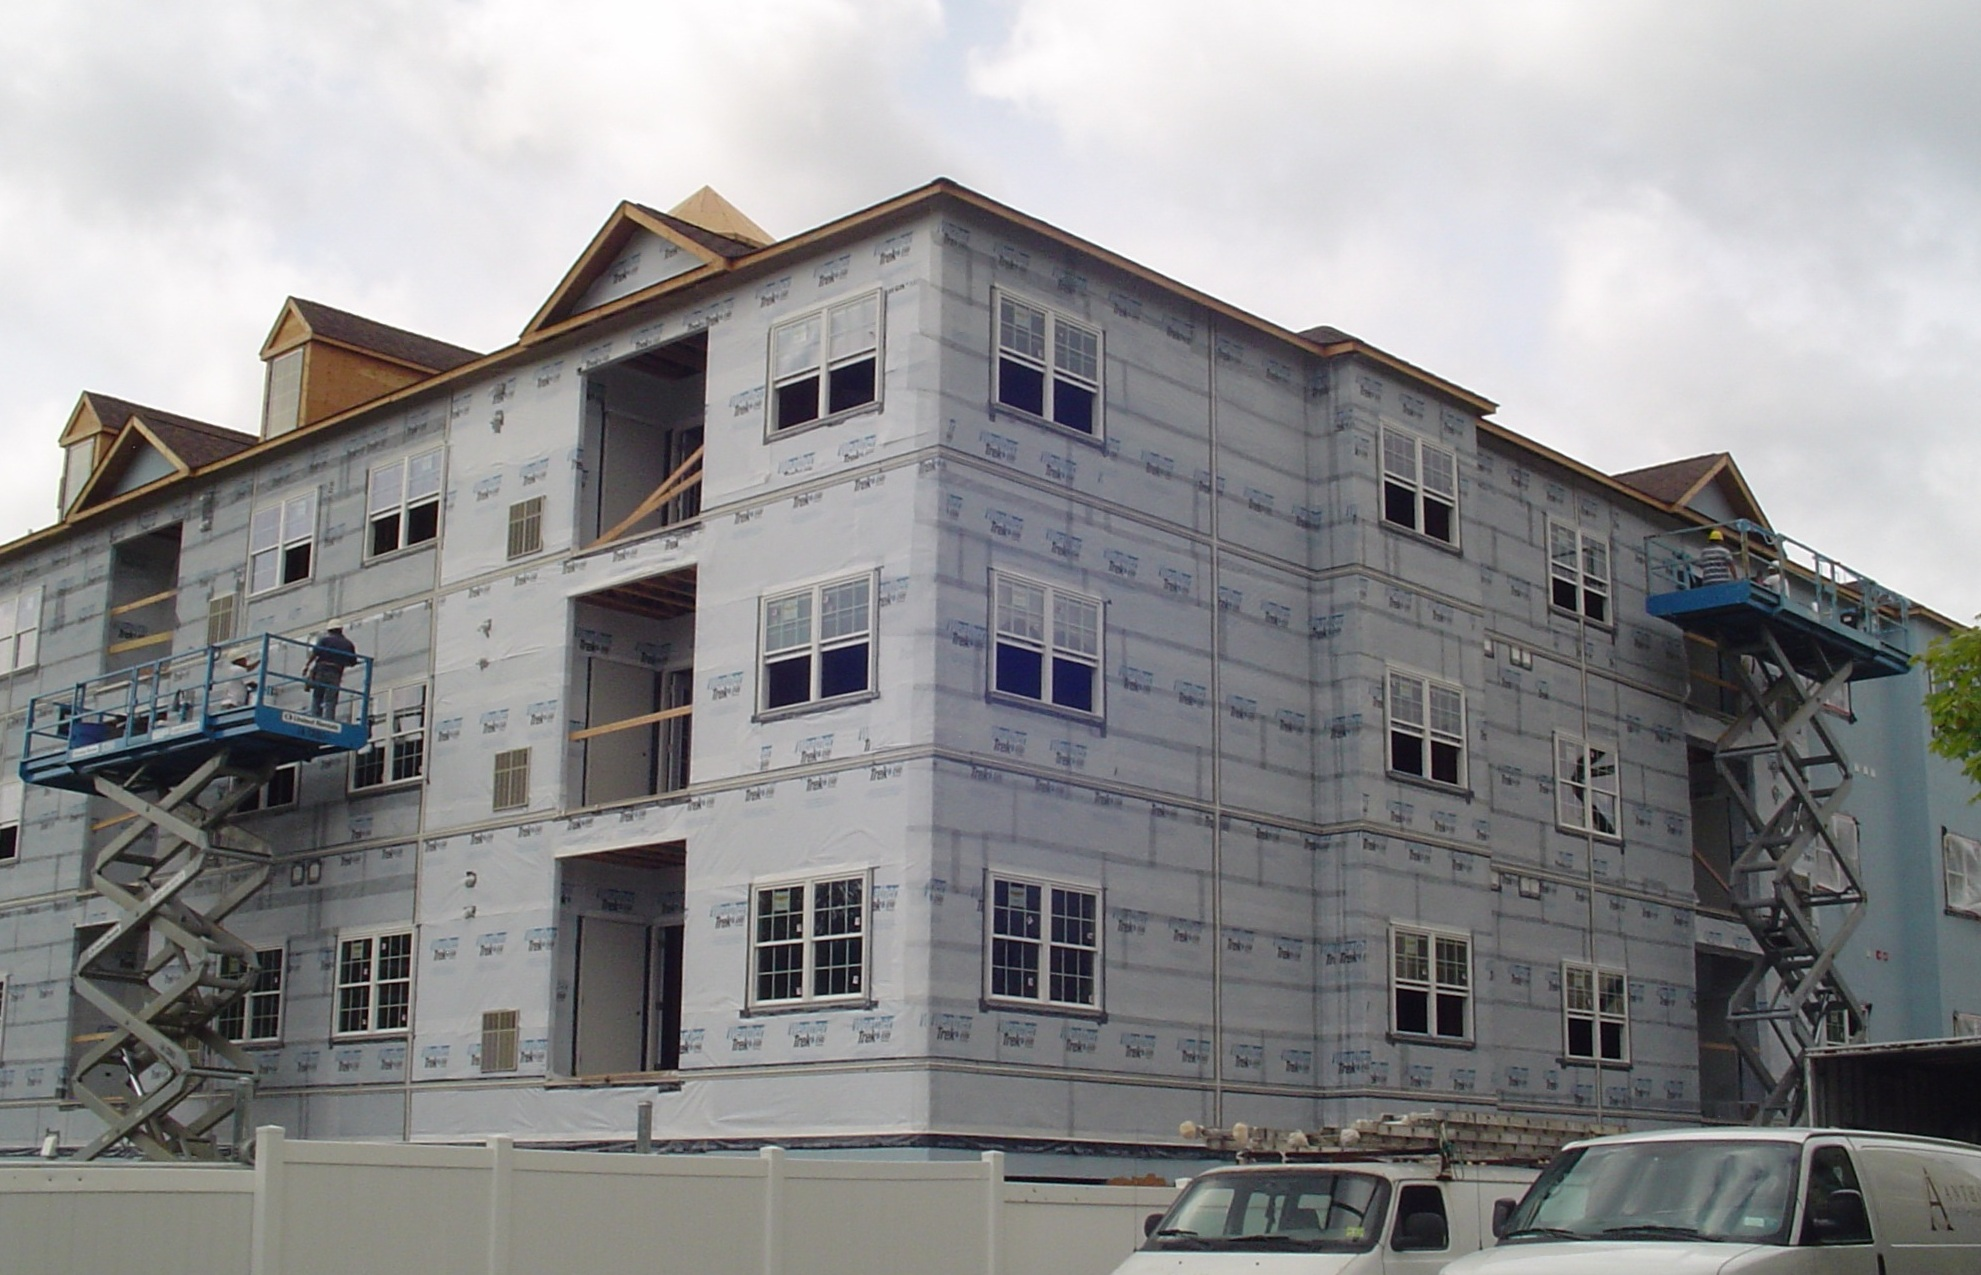 Apt building in Passaic County, stucco prep work done from scissor lift